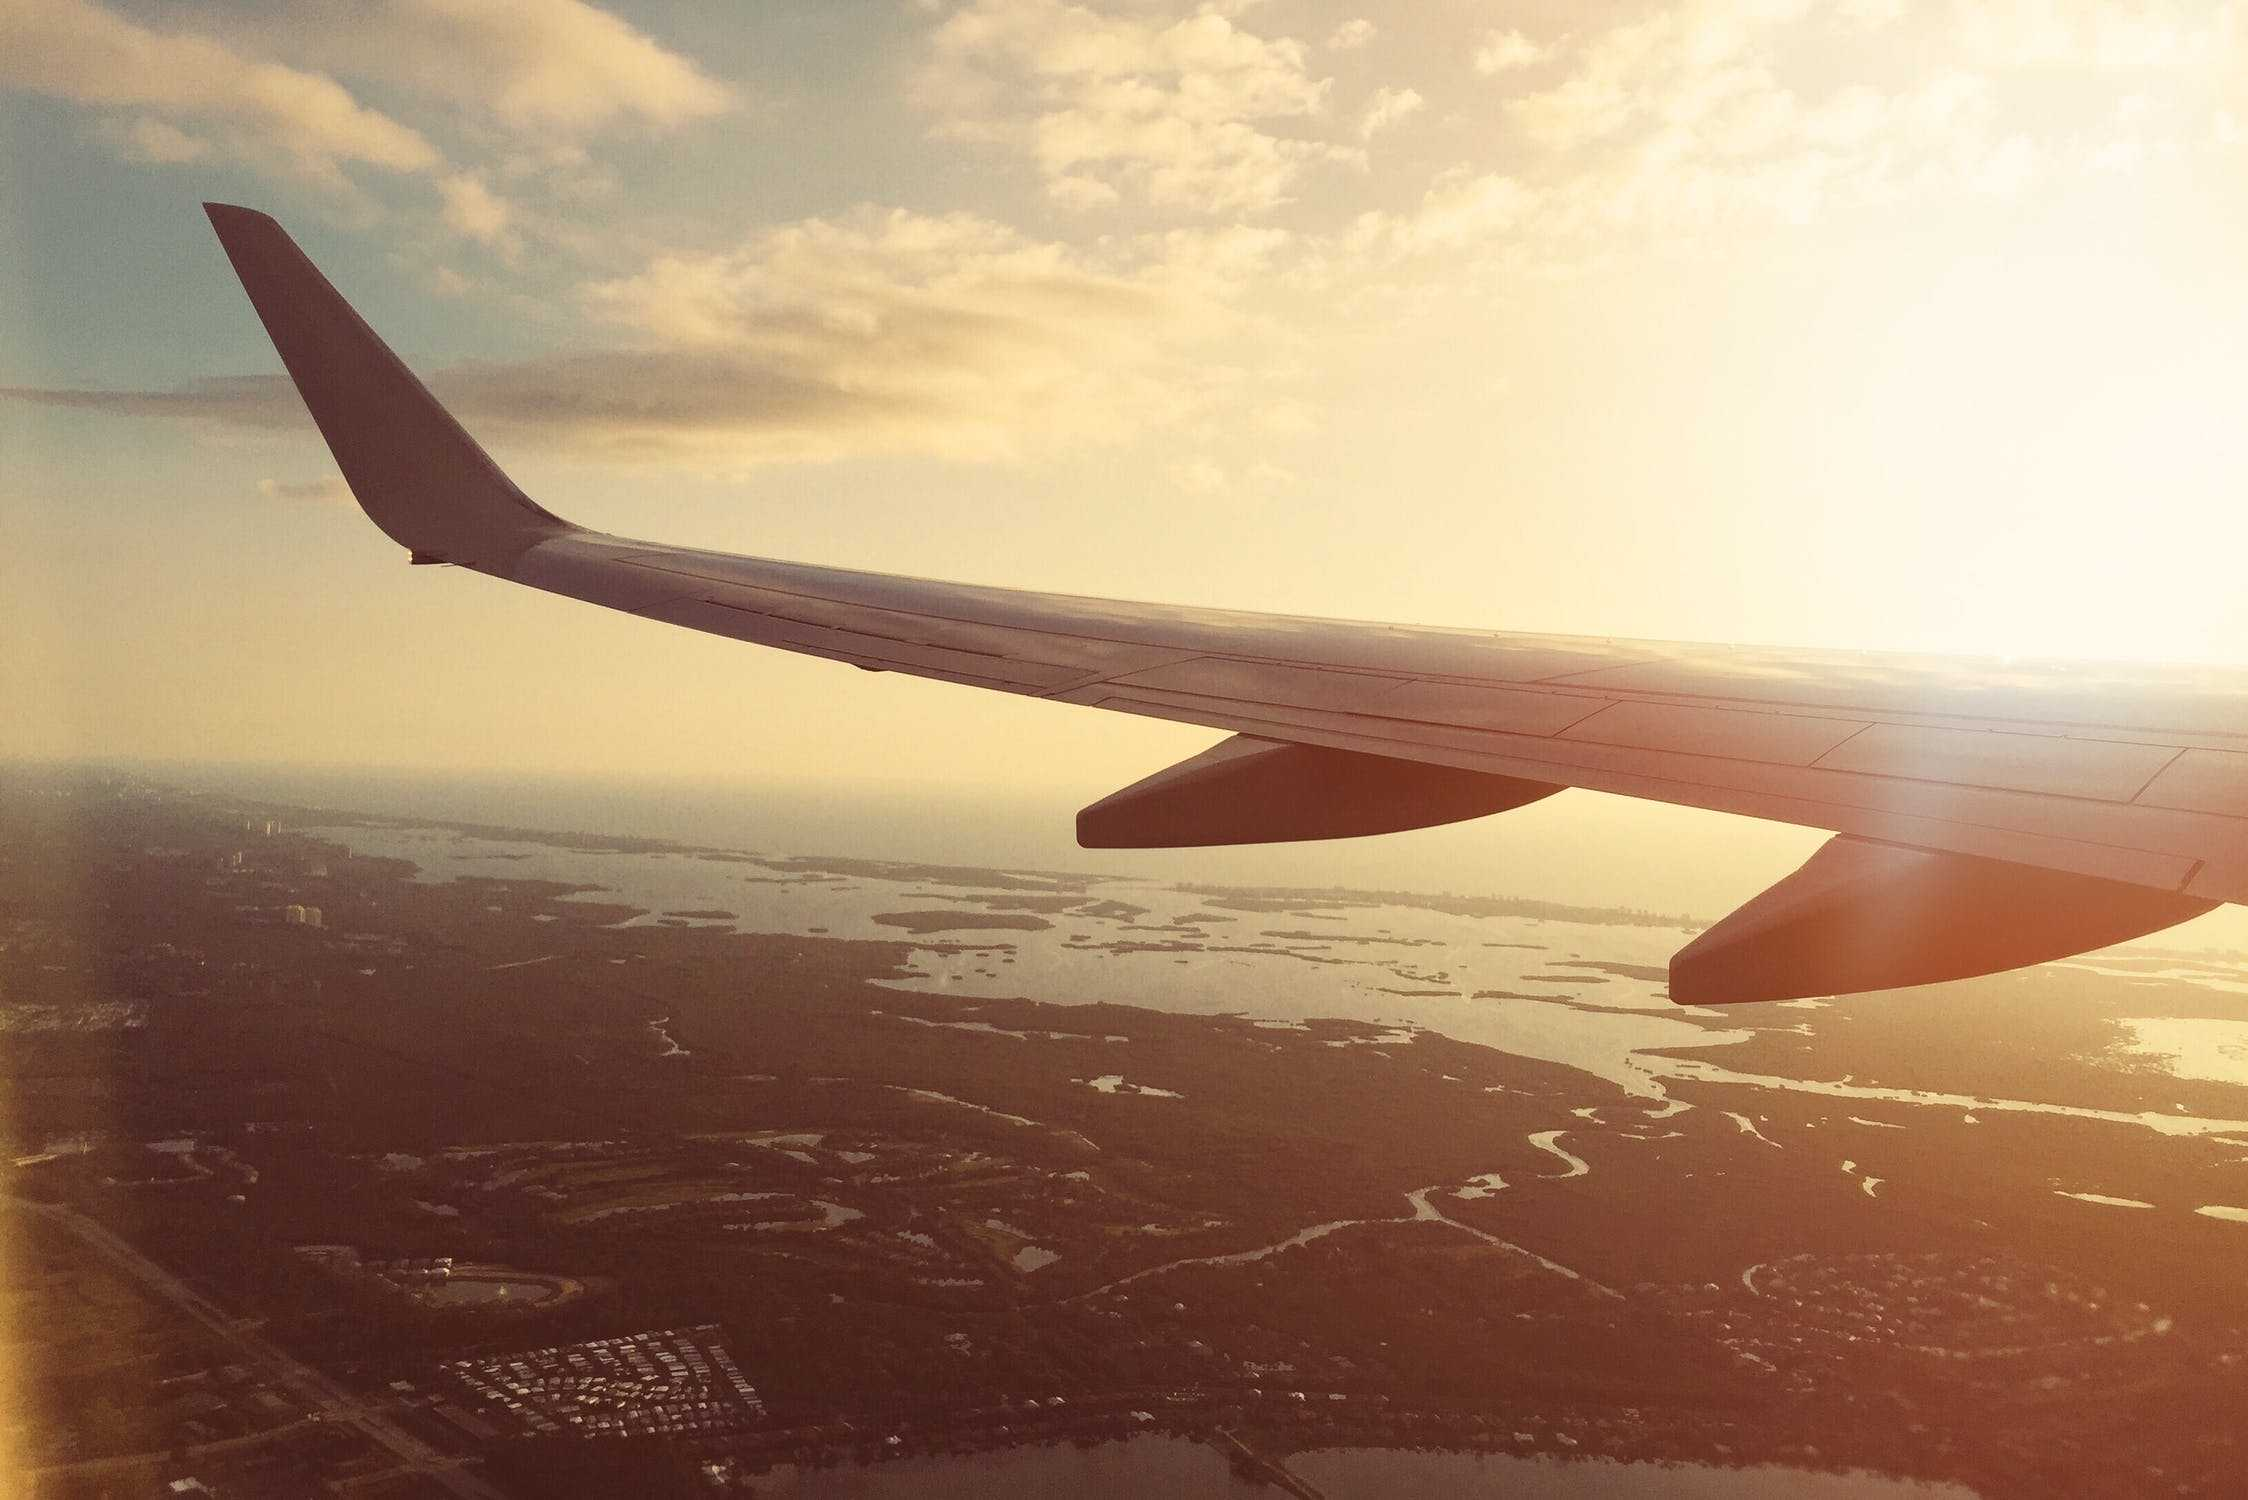 Digital due diligence on a travel and tourism business to inform an investment decision